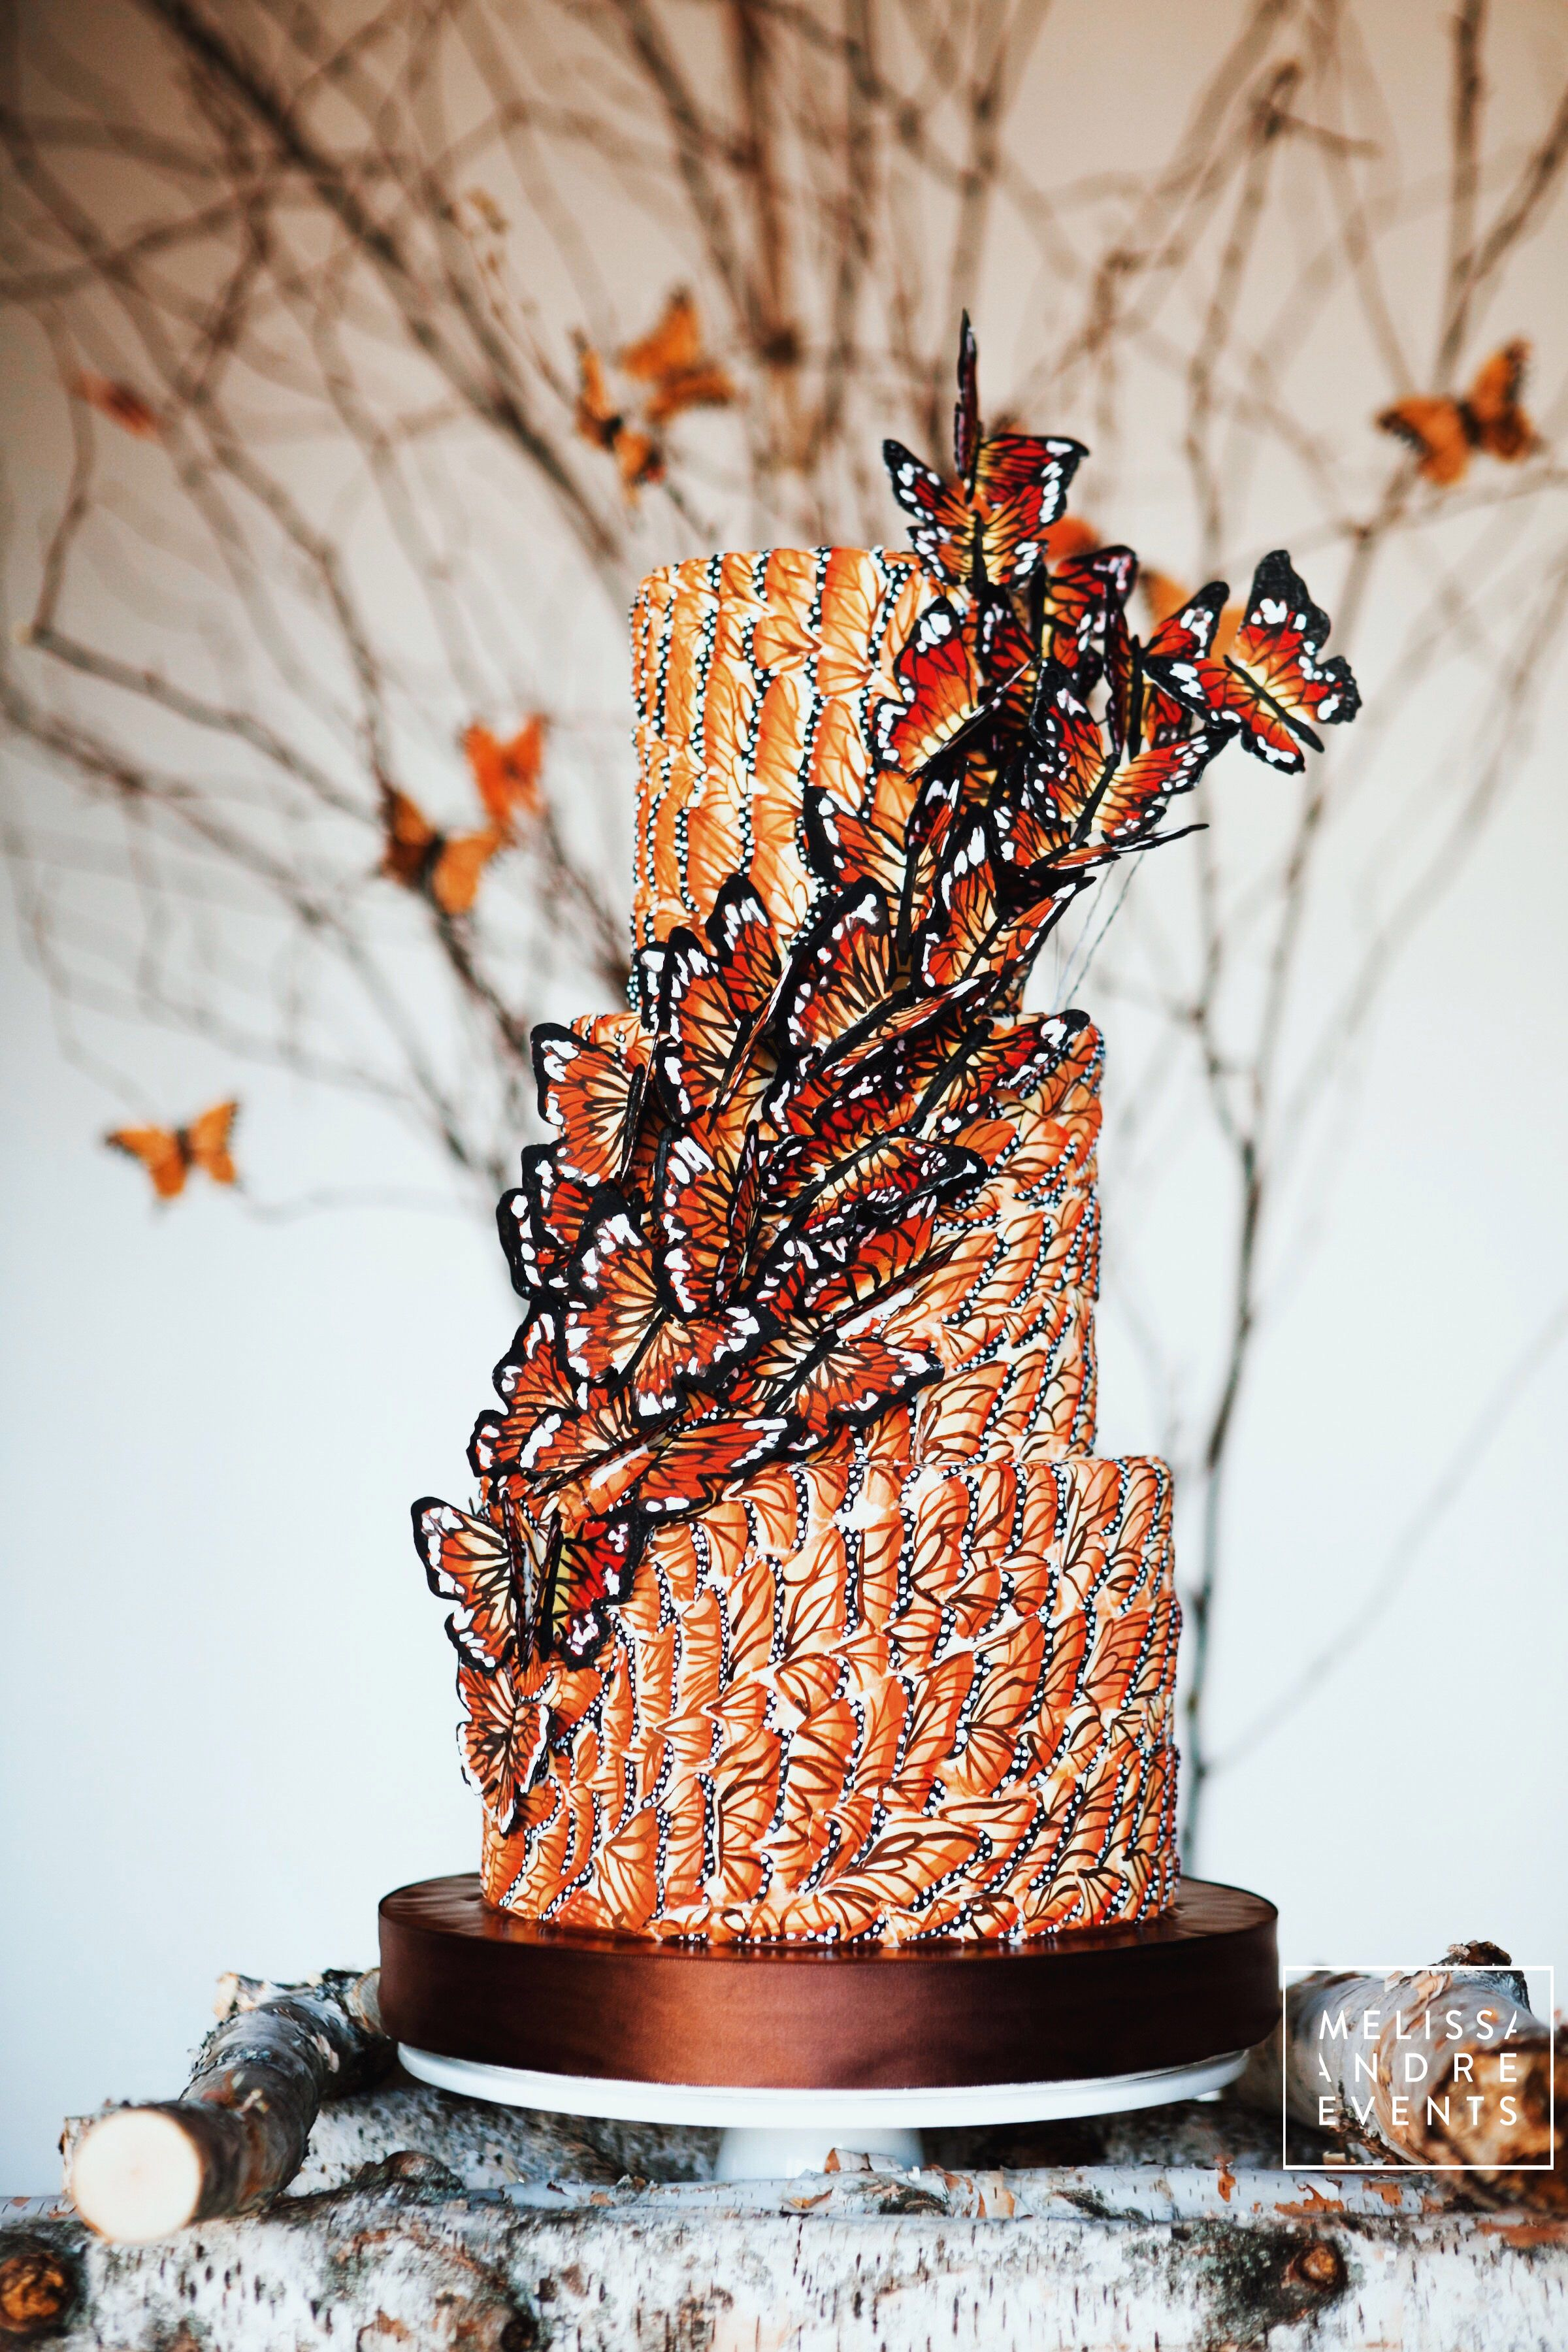 Butterfly dreamin' 🦋 🦋 🦋, custom cake for our Monarch